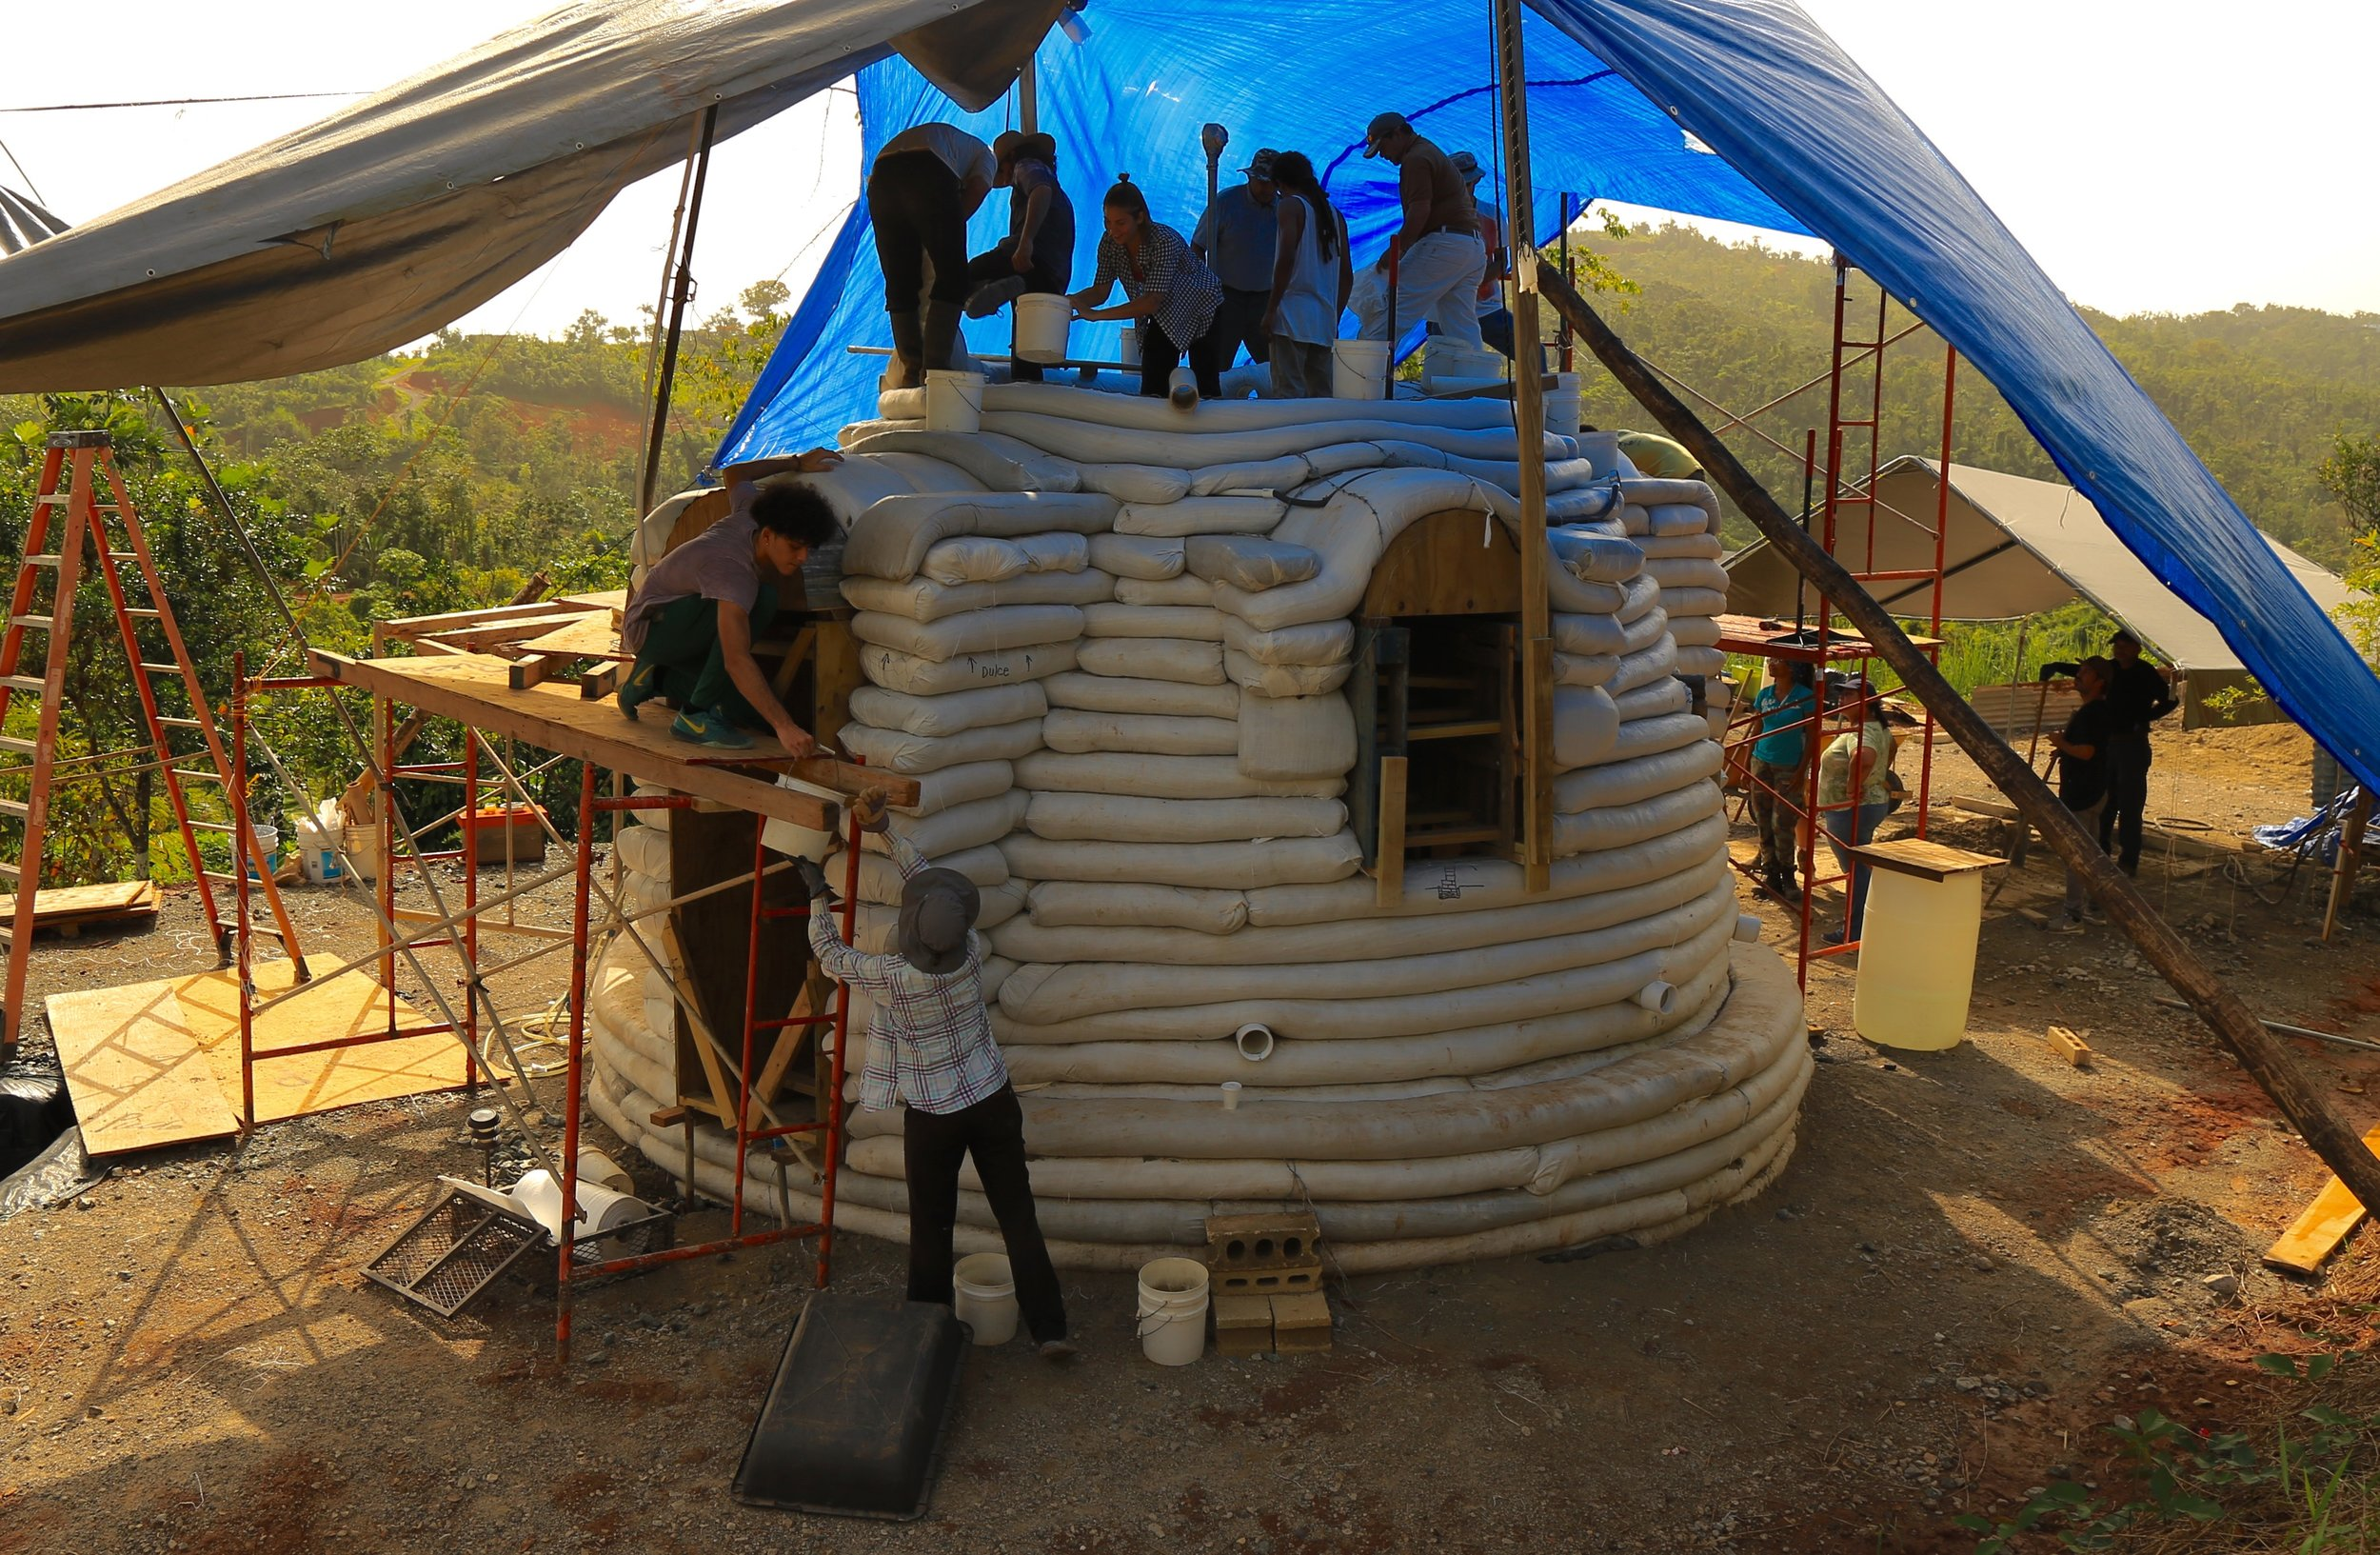 Superadobe in Puerto Rico - CalEarth | OCTOBER 15, 2018CalEarth alum Owen Ingley took a workshop in 2009 and has been working to promote SuperAdobe in Puerto Rico for the last 8 years. His nonprofit, Plentitud PR, has completed the construction of 3 structures in Puerto Rico, and all of them successfully survived the devastating impact of Hurricane María one year ago. In February 2018 Plenitud PR was granted funding from the Hispanic Federation to teach workshops on Superadobe emergency shelters and build a demonstration house. The work was recently featured on the front page newspaper article in the local newspaper, and they are receiving a lot of interest from local government officials. Keep up the great work Owen! (View)